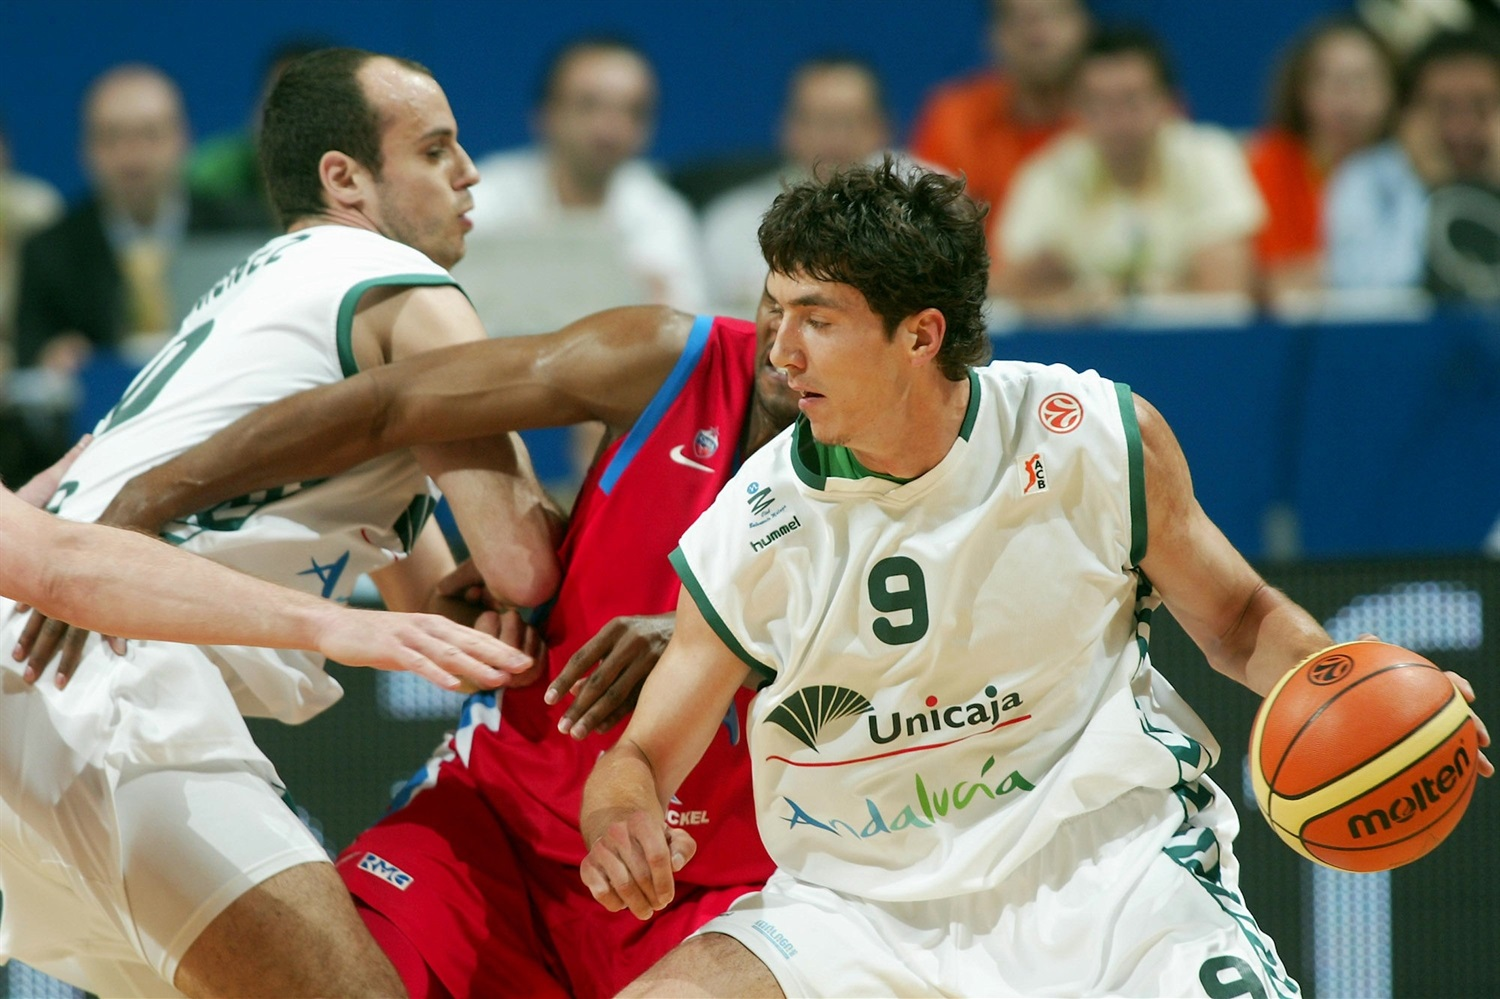 Jiri Welsch - Unicaja Malaga - Final Four Athens 2007 - EB06